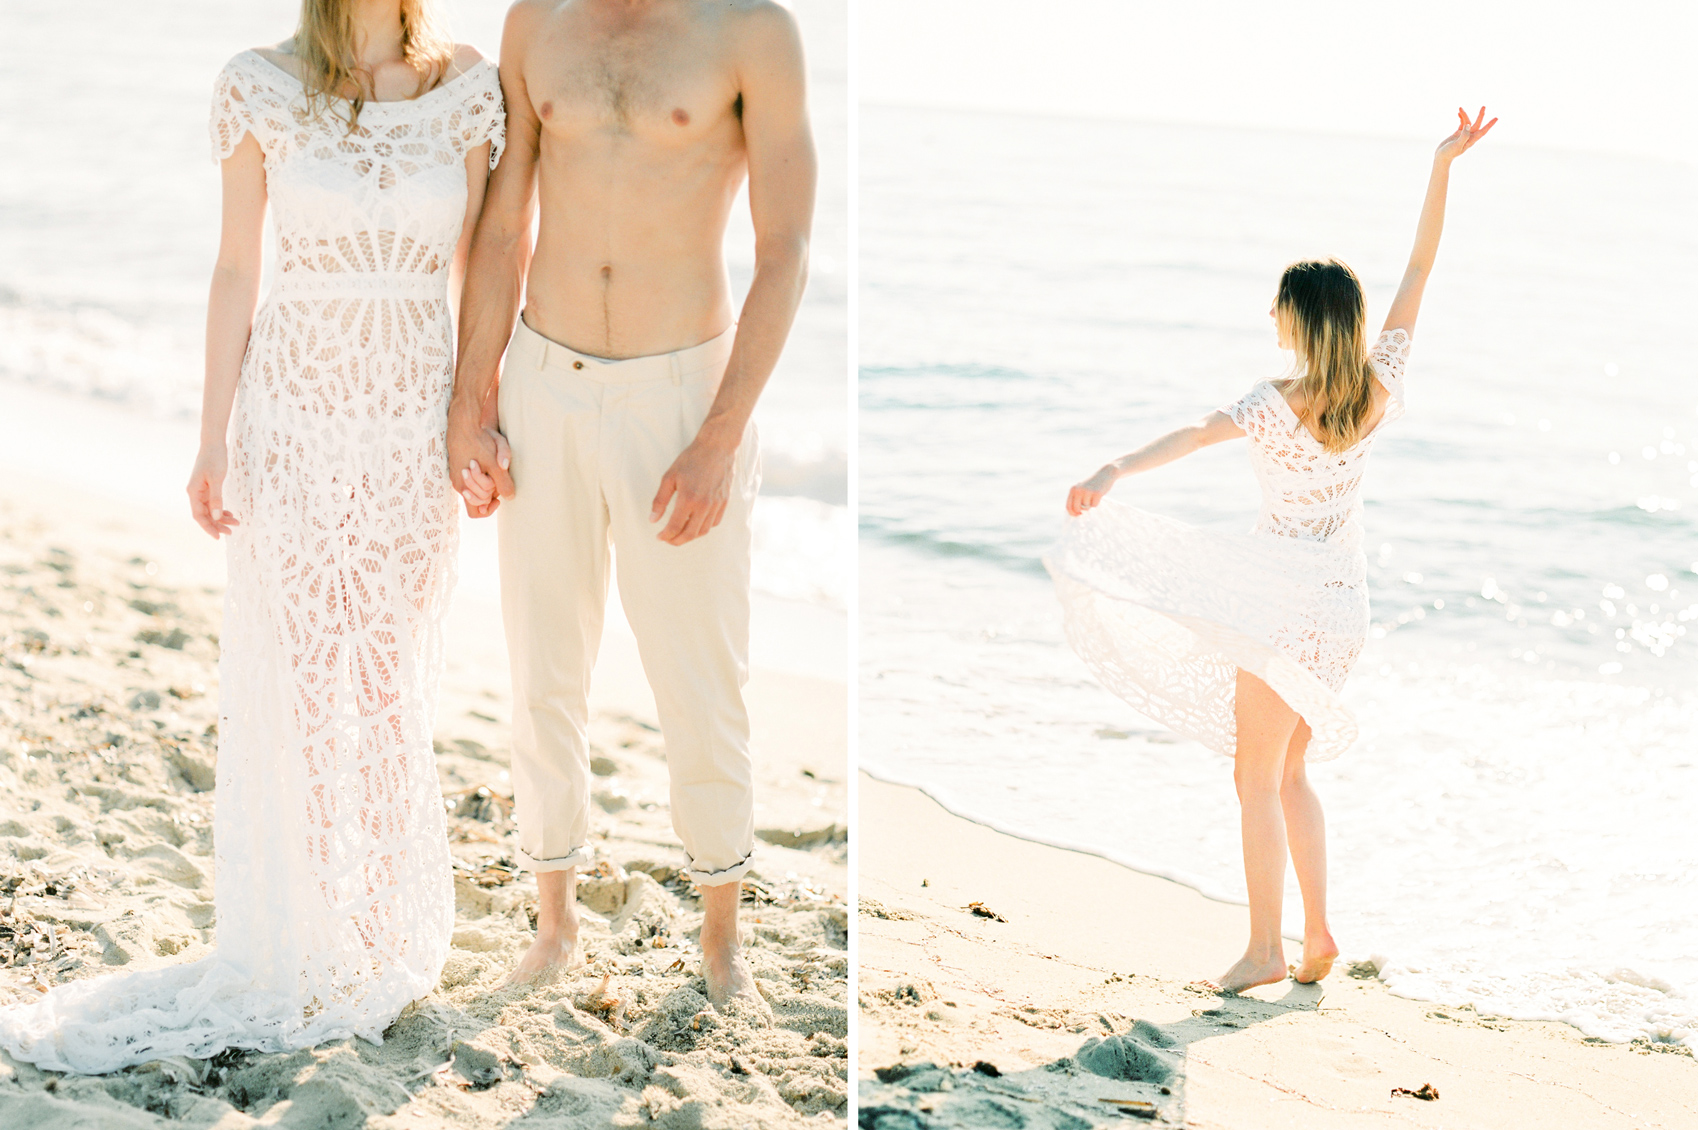 Saint Tropez Honeymoon Photo Session by Ashley Ludaescher Photography (16)